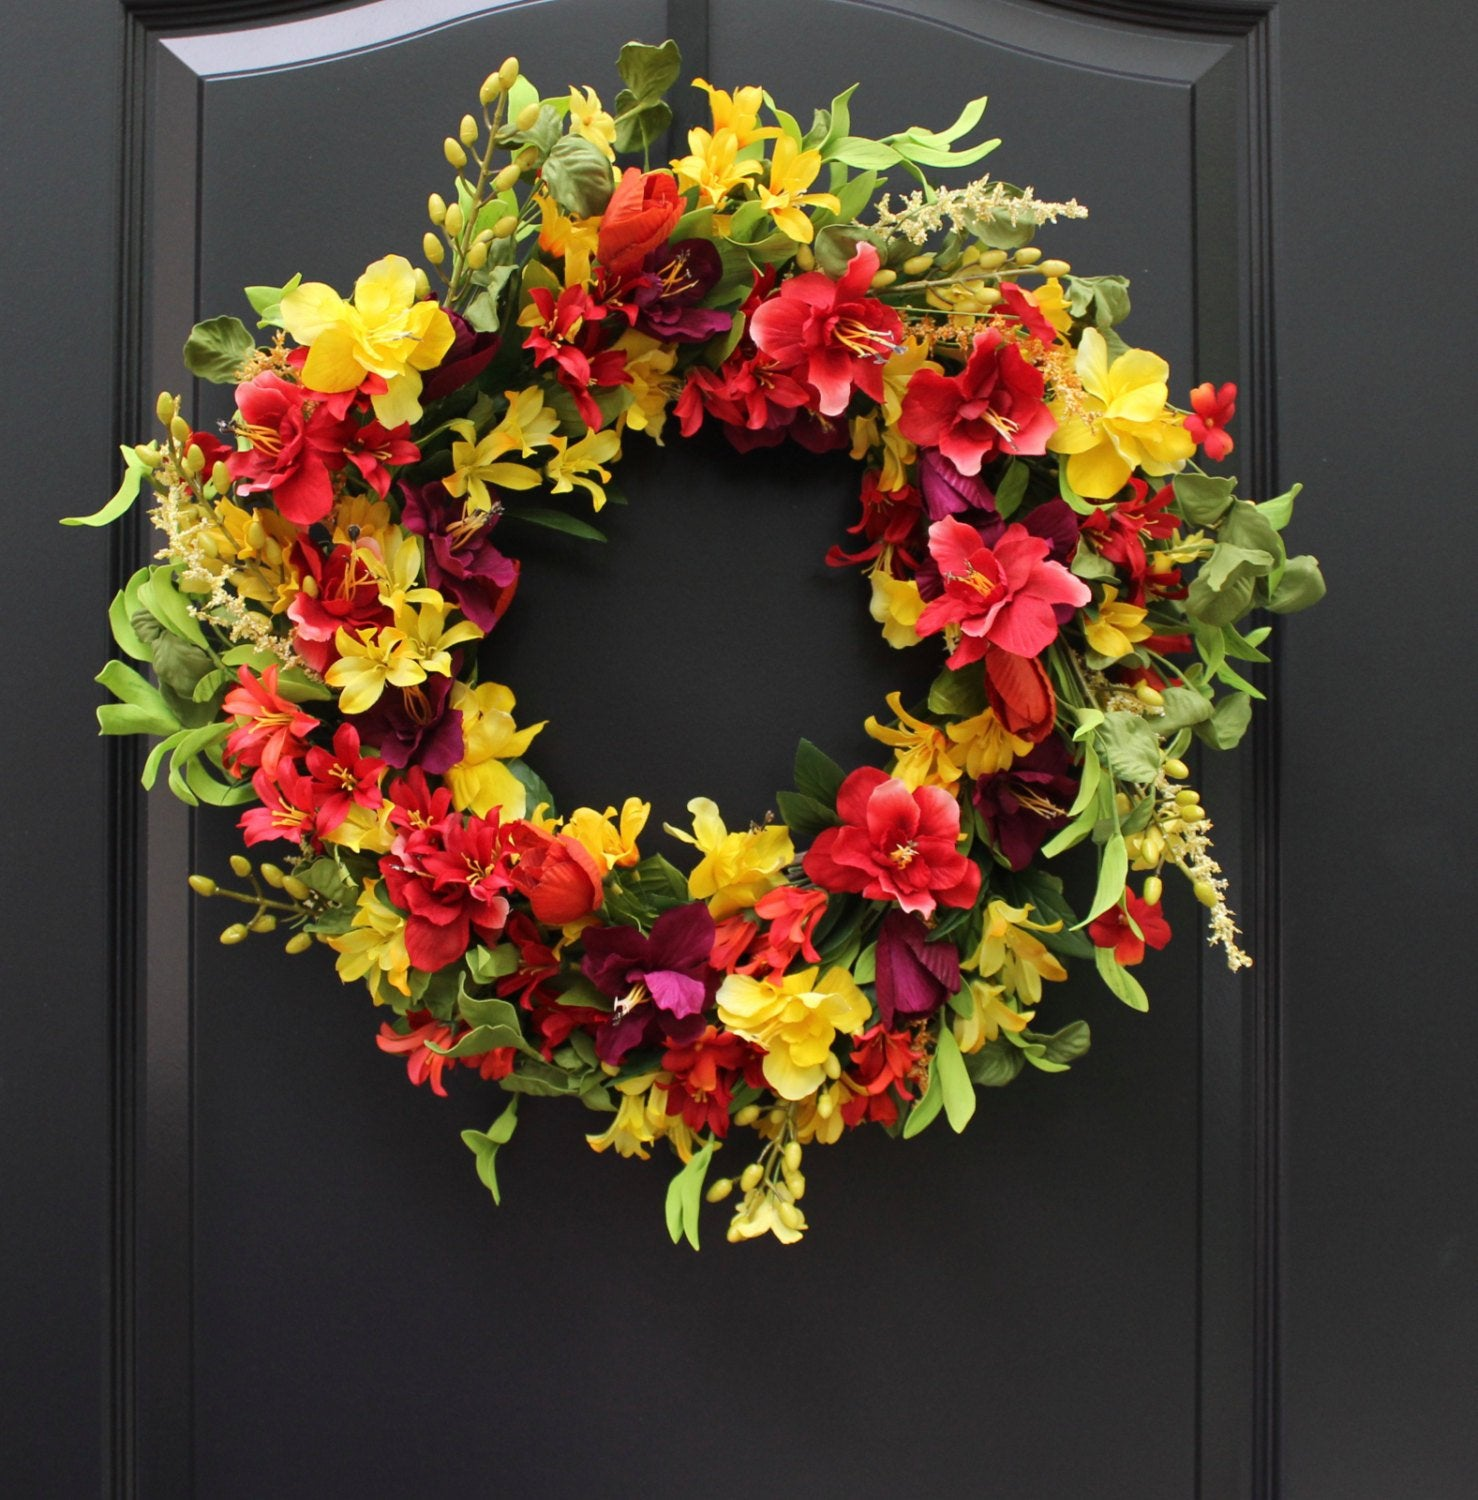 Floral Door Wreath - Summer Wreath - Flower Wreath - Handmade Wreath